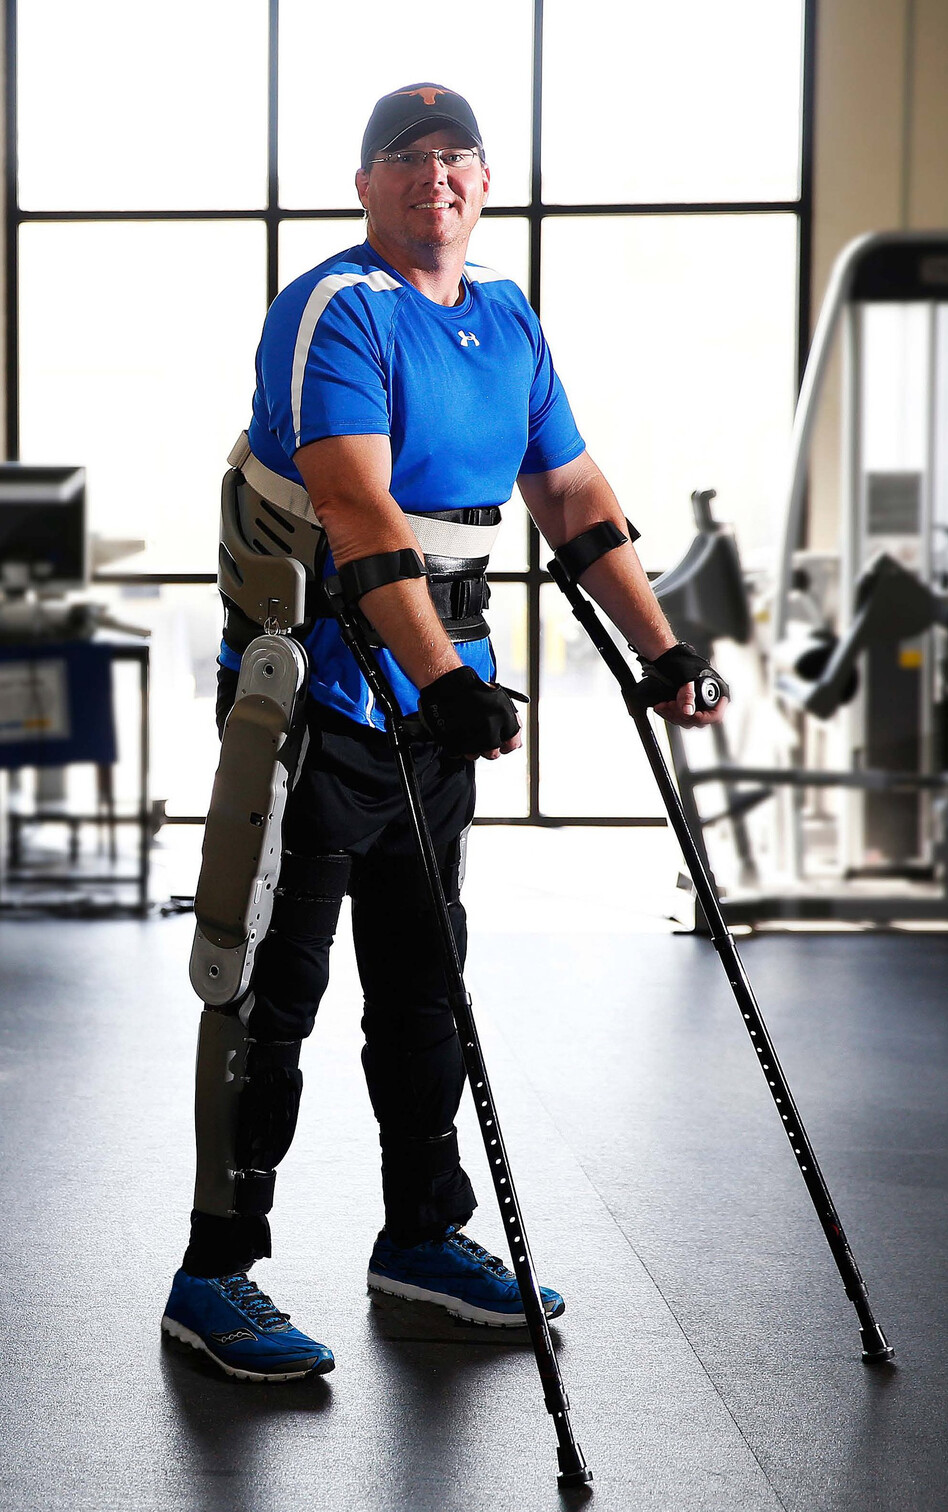 Brian Shaffer tests an exoskeleton developed by researchers at Vanderbilt University at a rehabilitation center in Franklin, Tenn. The exoskeleton locks around the legs and feet. To stand up, a paralyzed person simply leans forward. (Vanderbilt University)